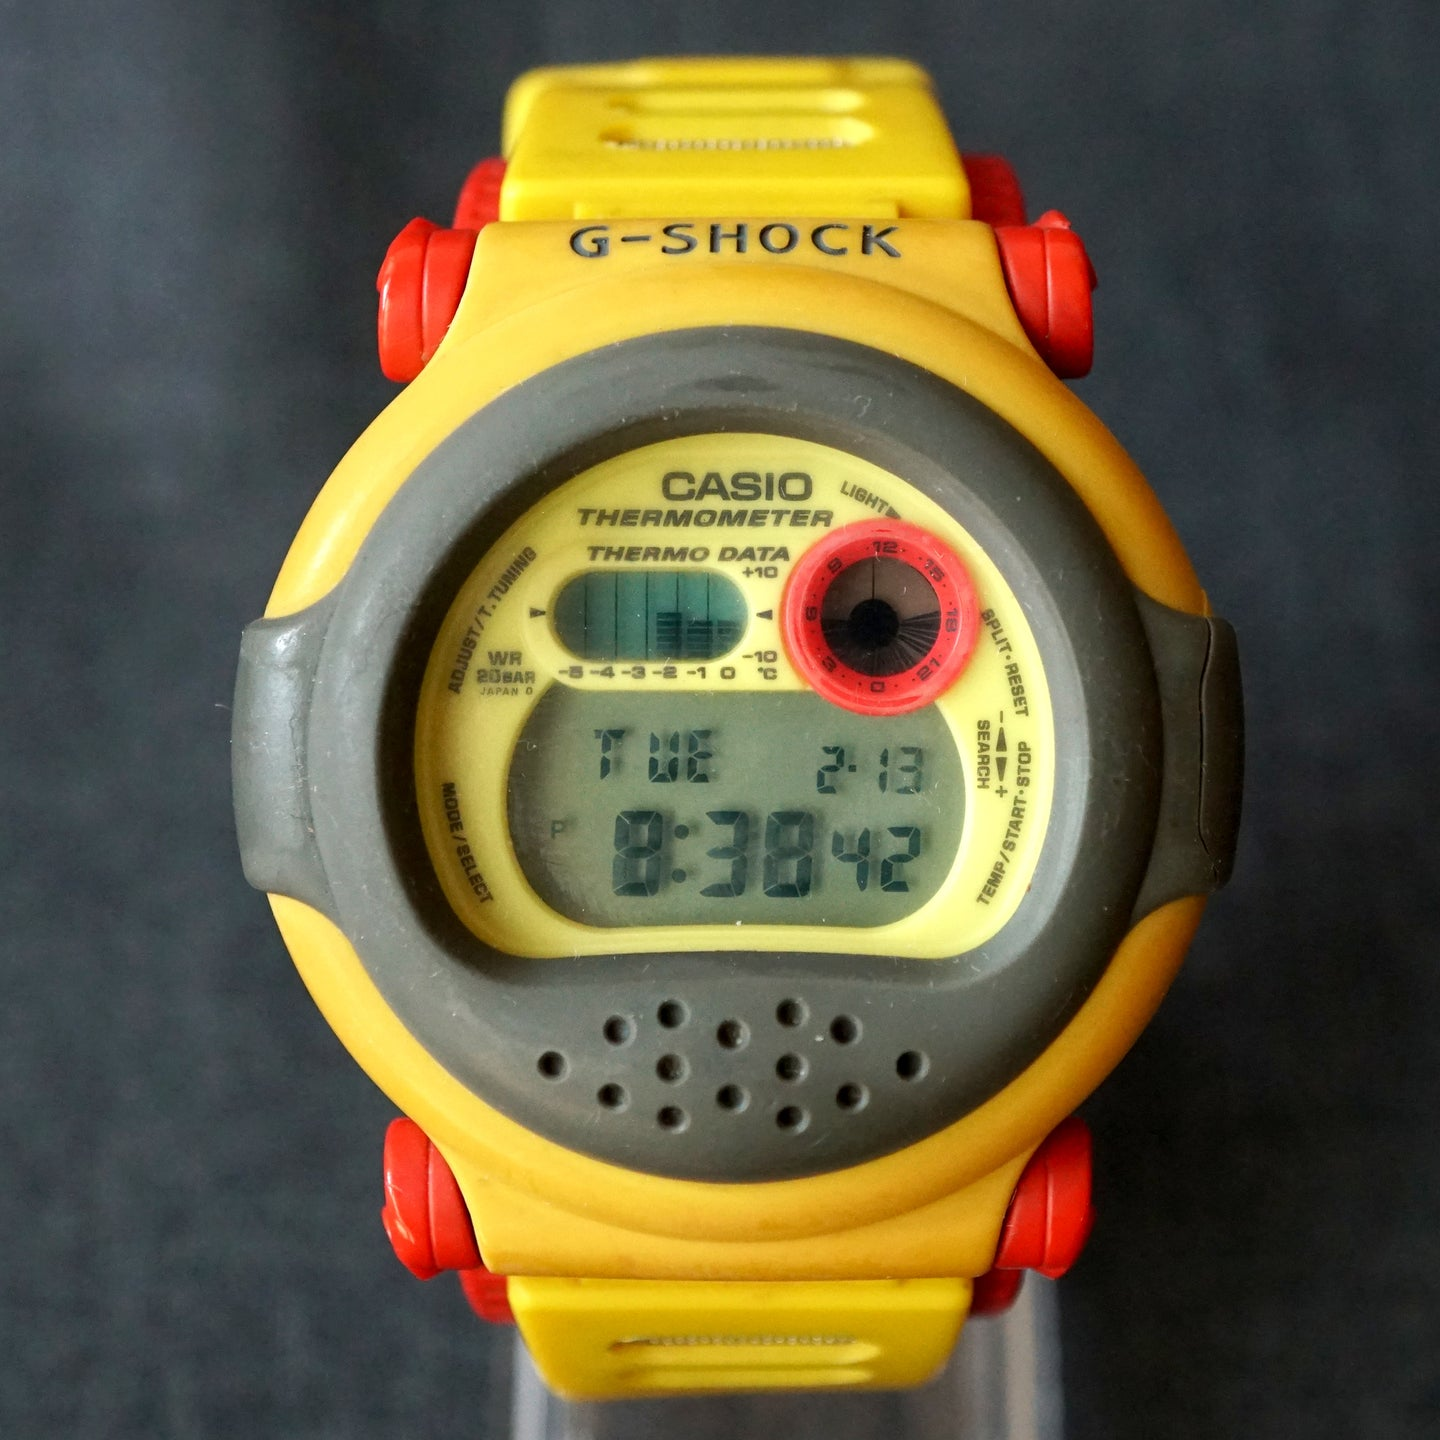 1994 VINTAGE CASIO G-SHOCK DW-001 ORIGINAL